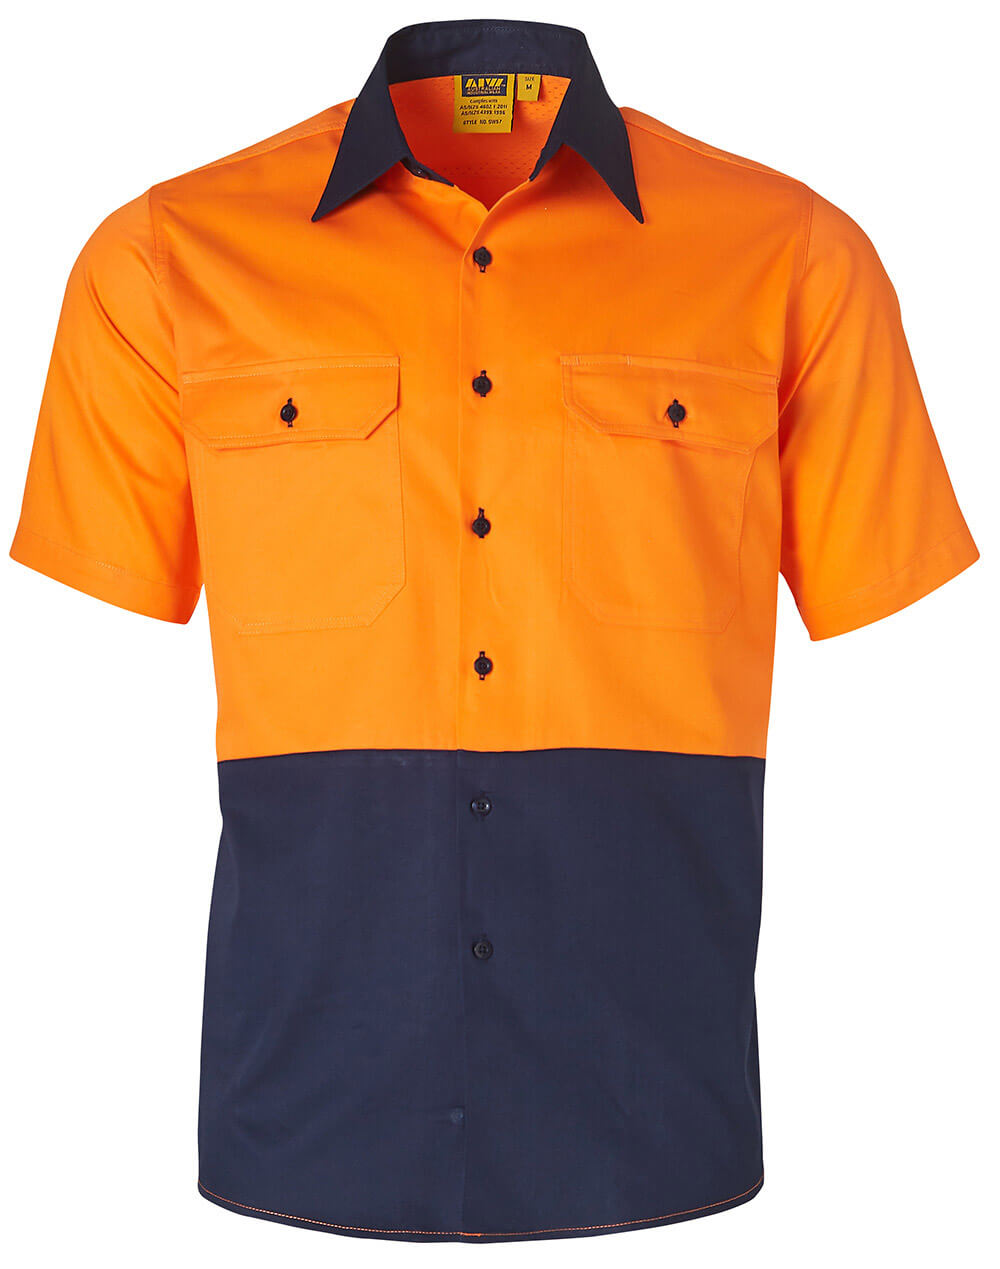 WS Mens Hi Vis Cool-Breeze Cotton Twill Short Sleeve Safety Shirt SW57